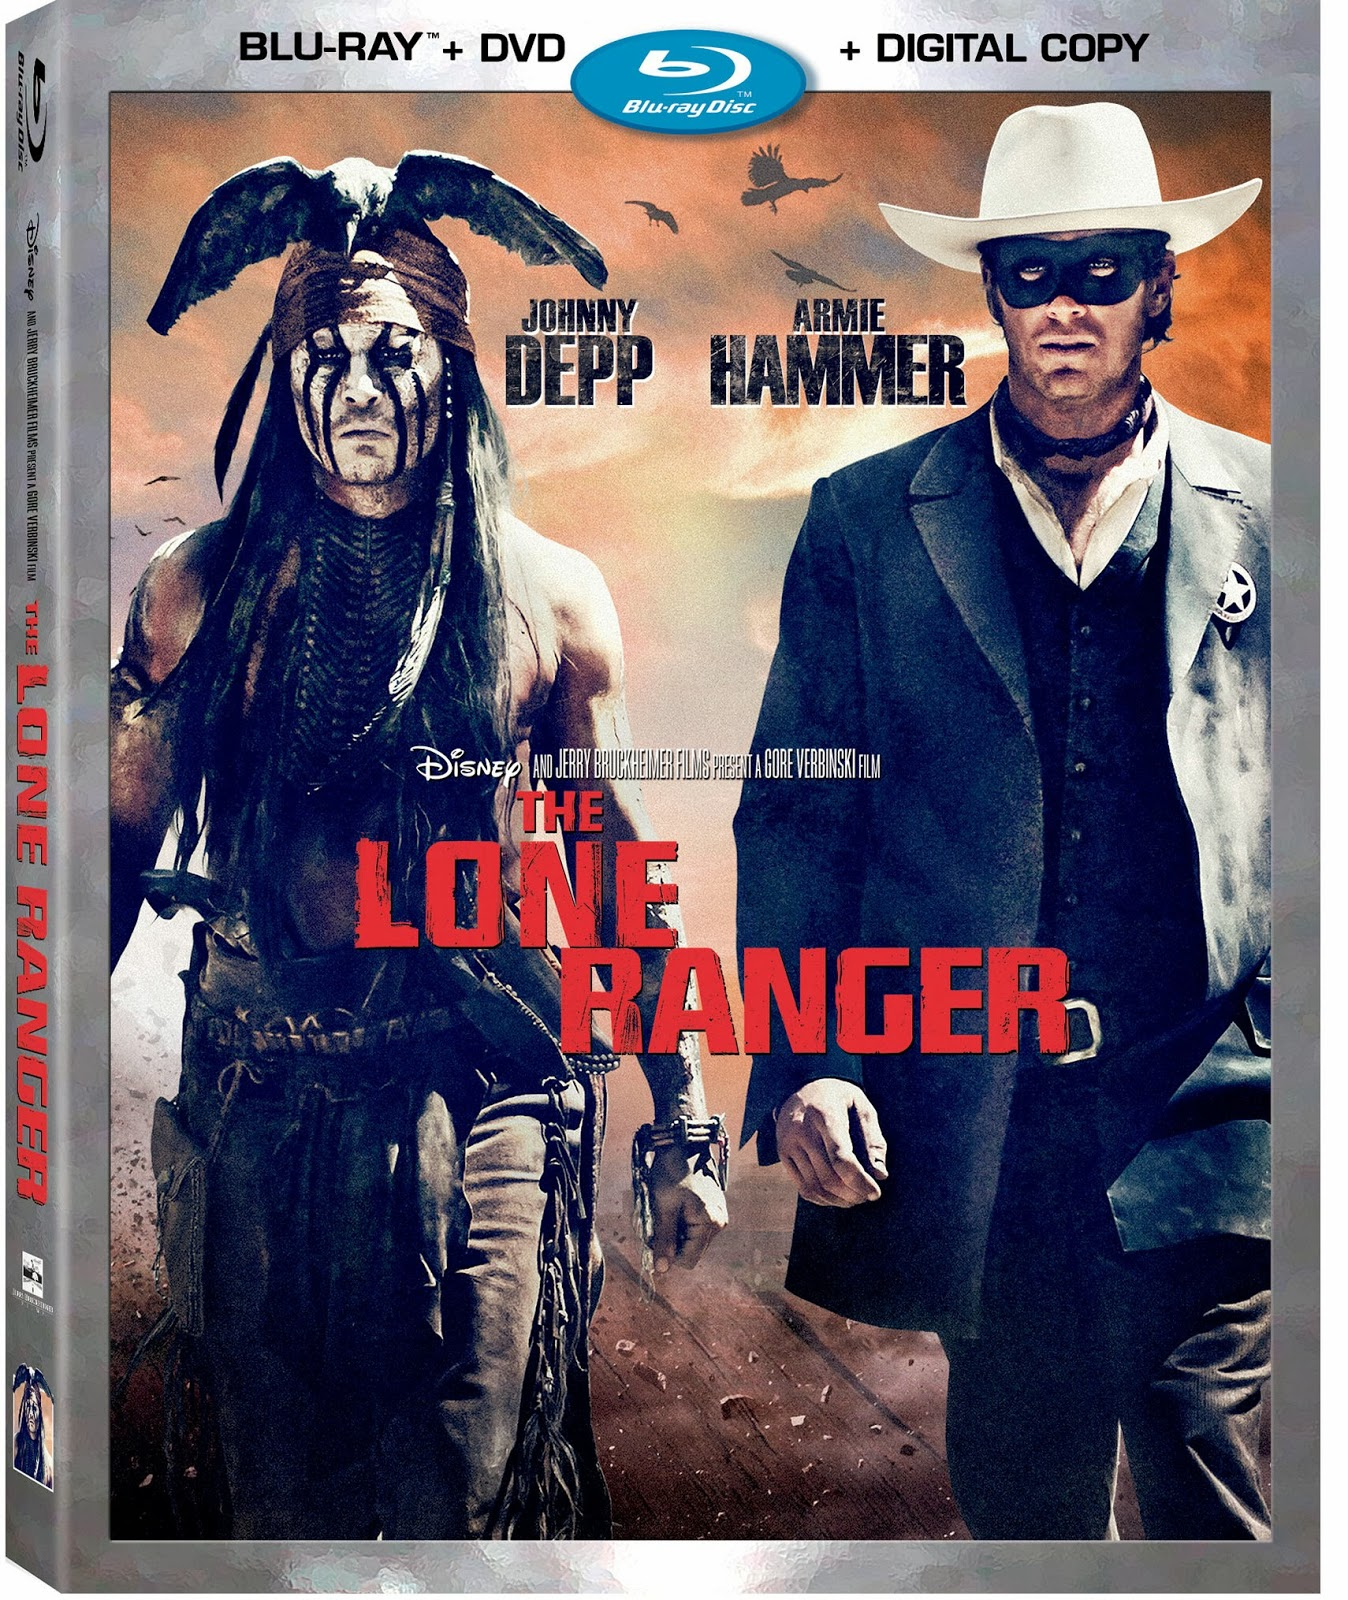 Lone Ranger Soundtrack Download Torrent